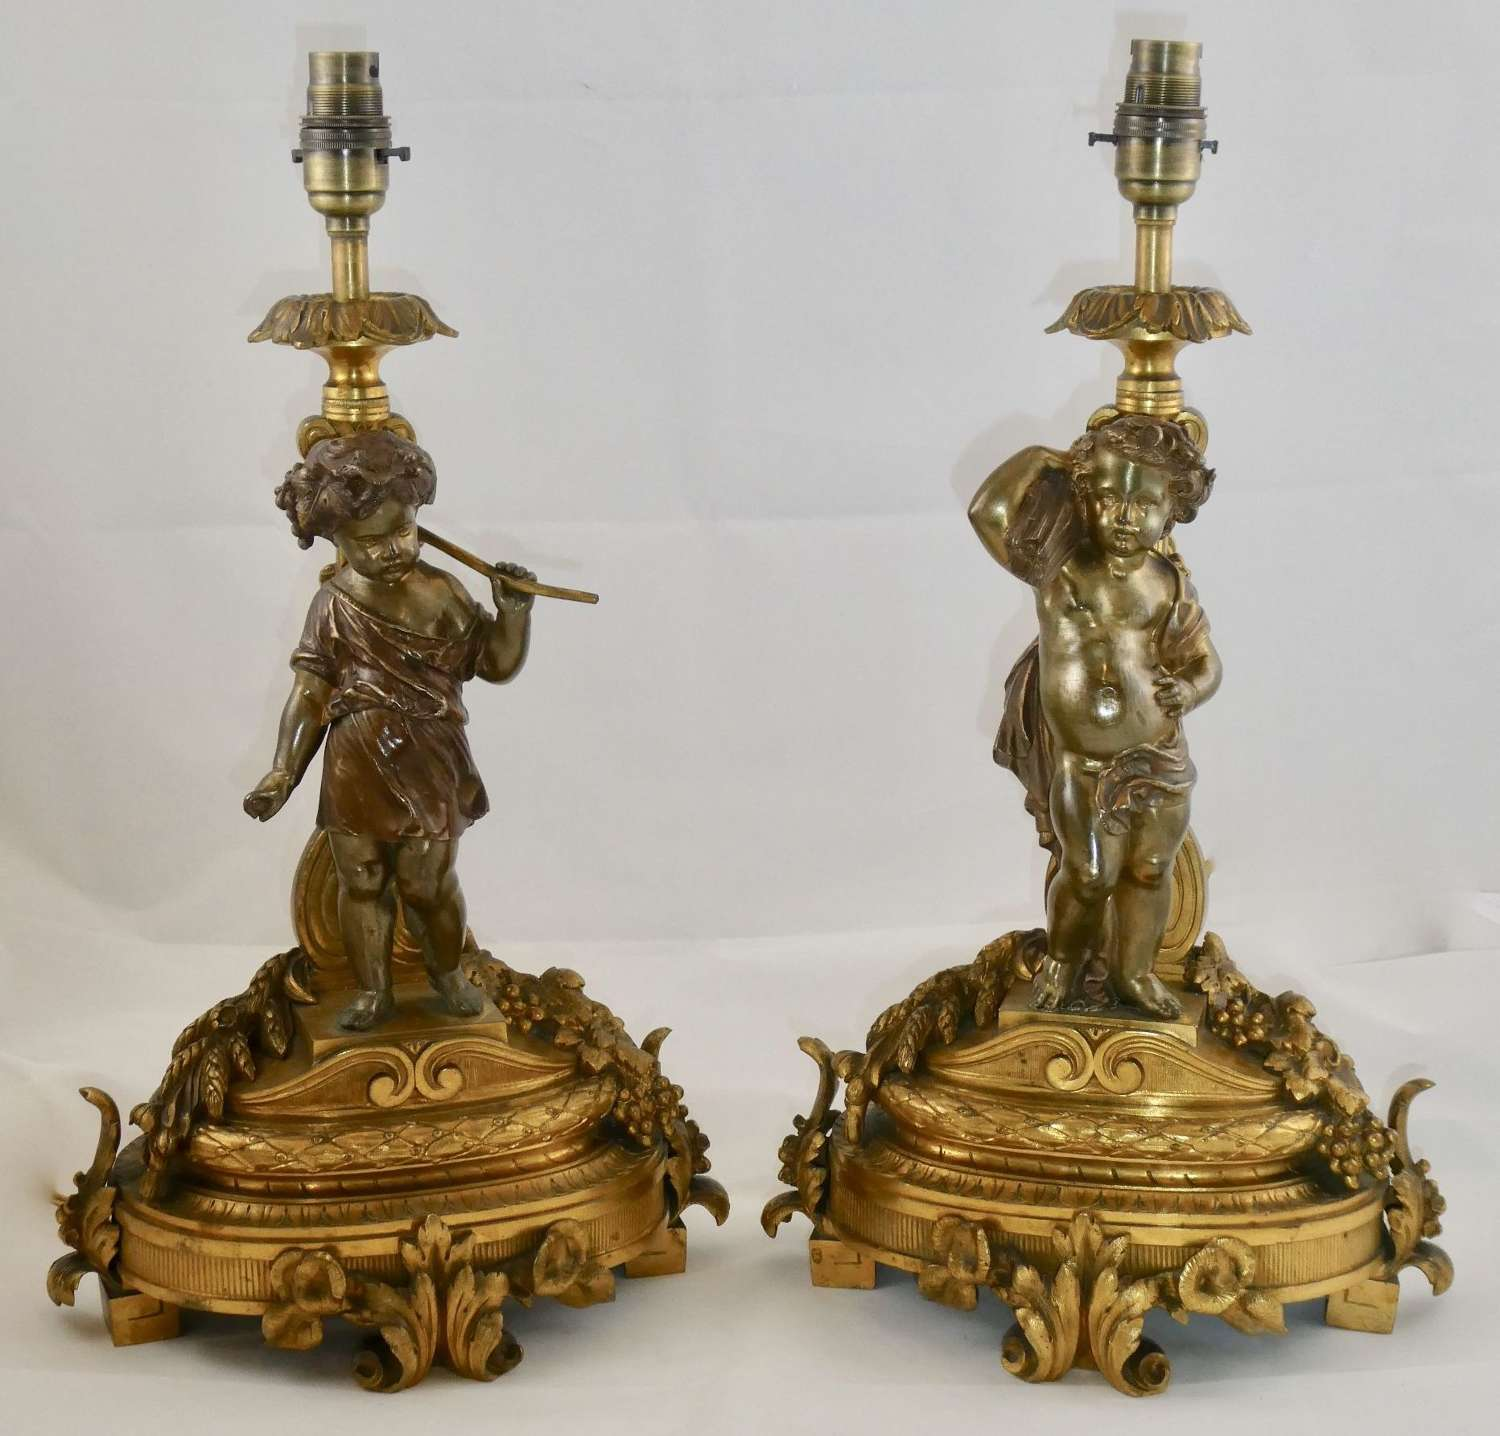 Pair of 19th Century Gilt Bronze Lamps